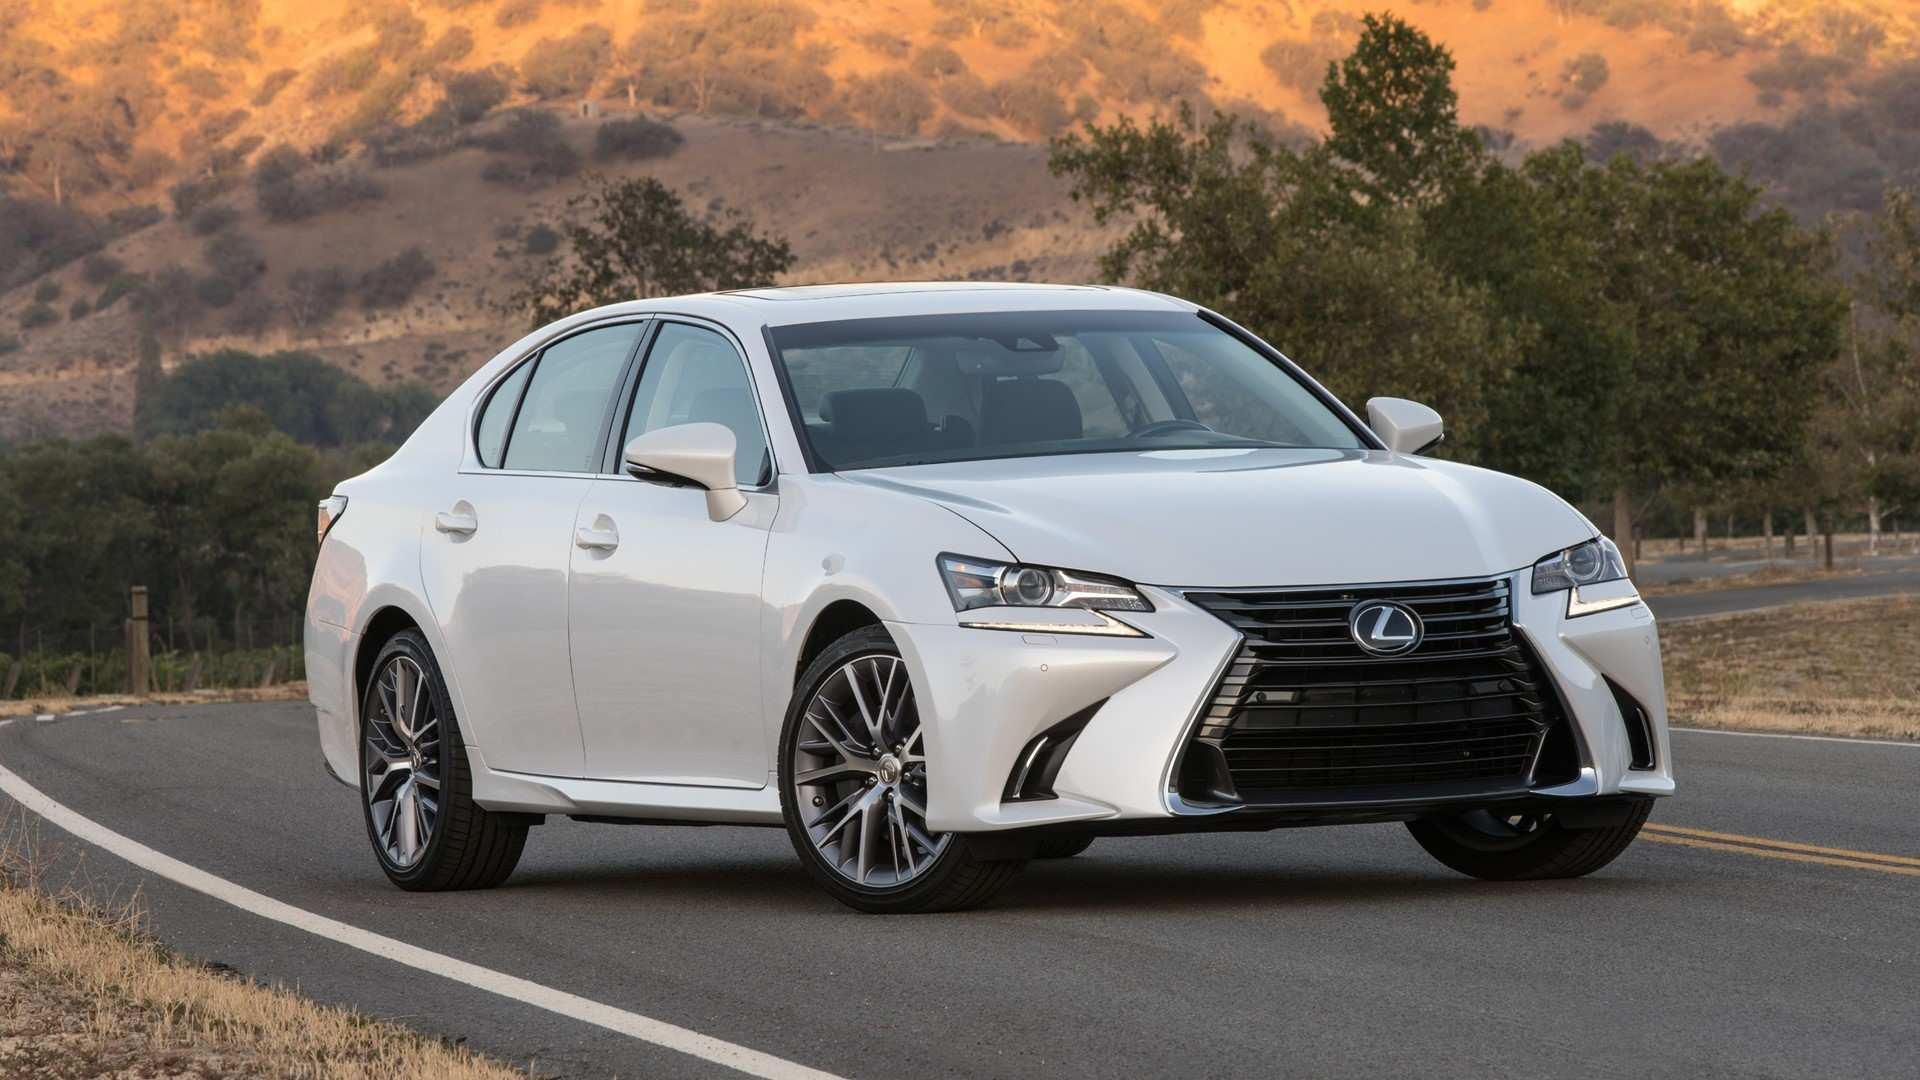 18 Best Lexus Gs 2019 Release Date And Concept